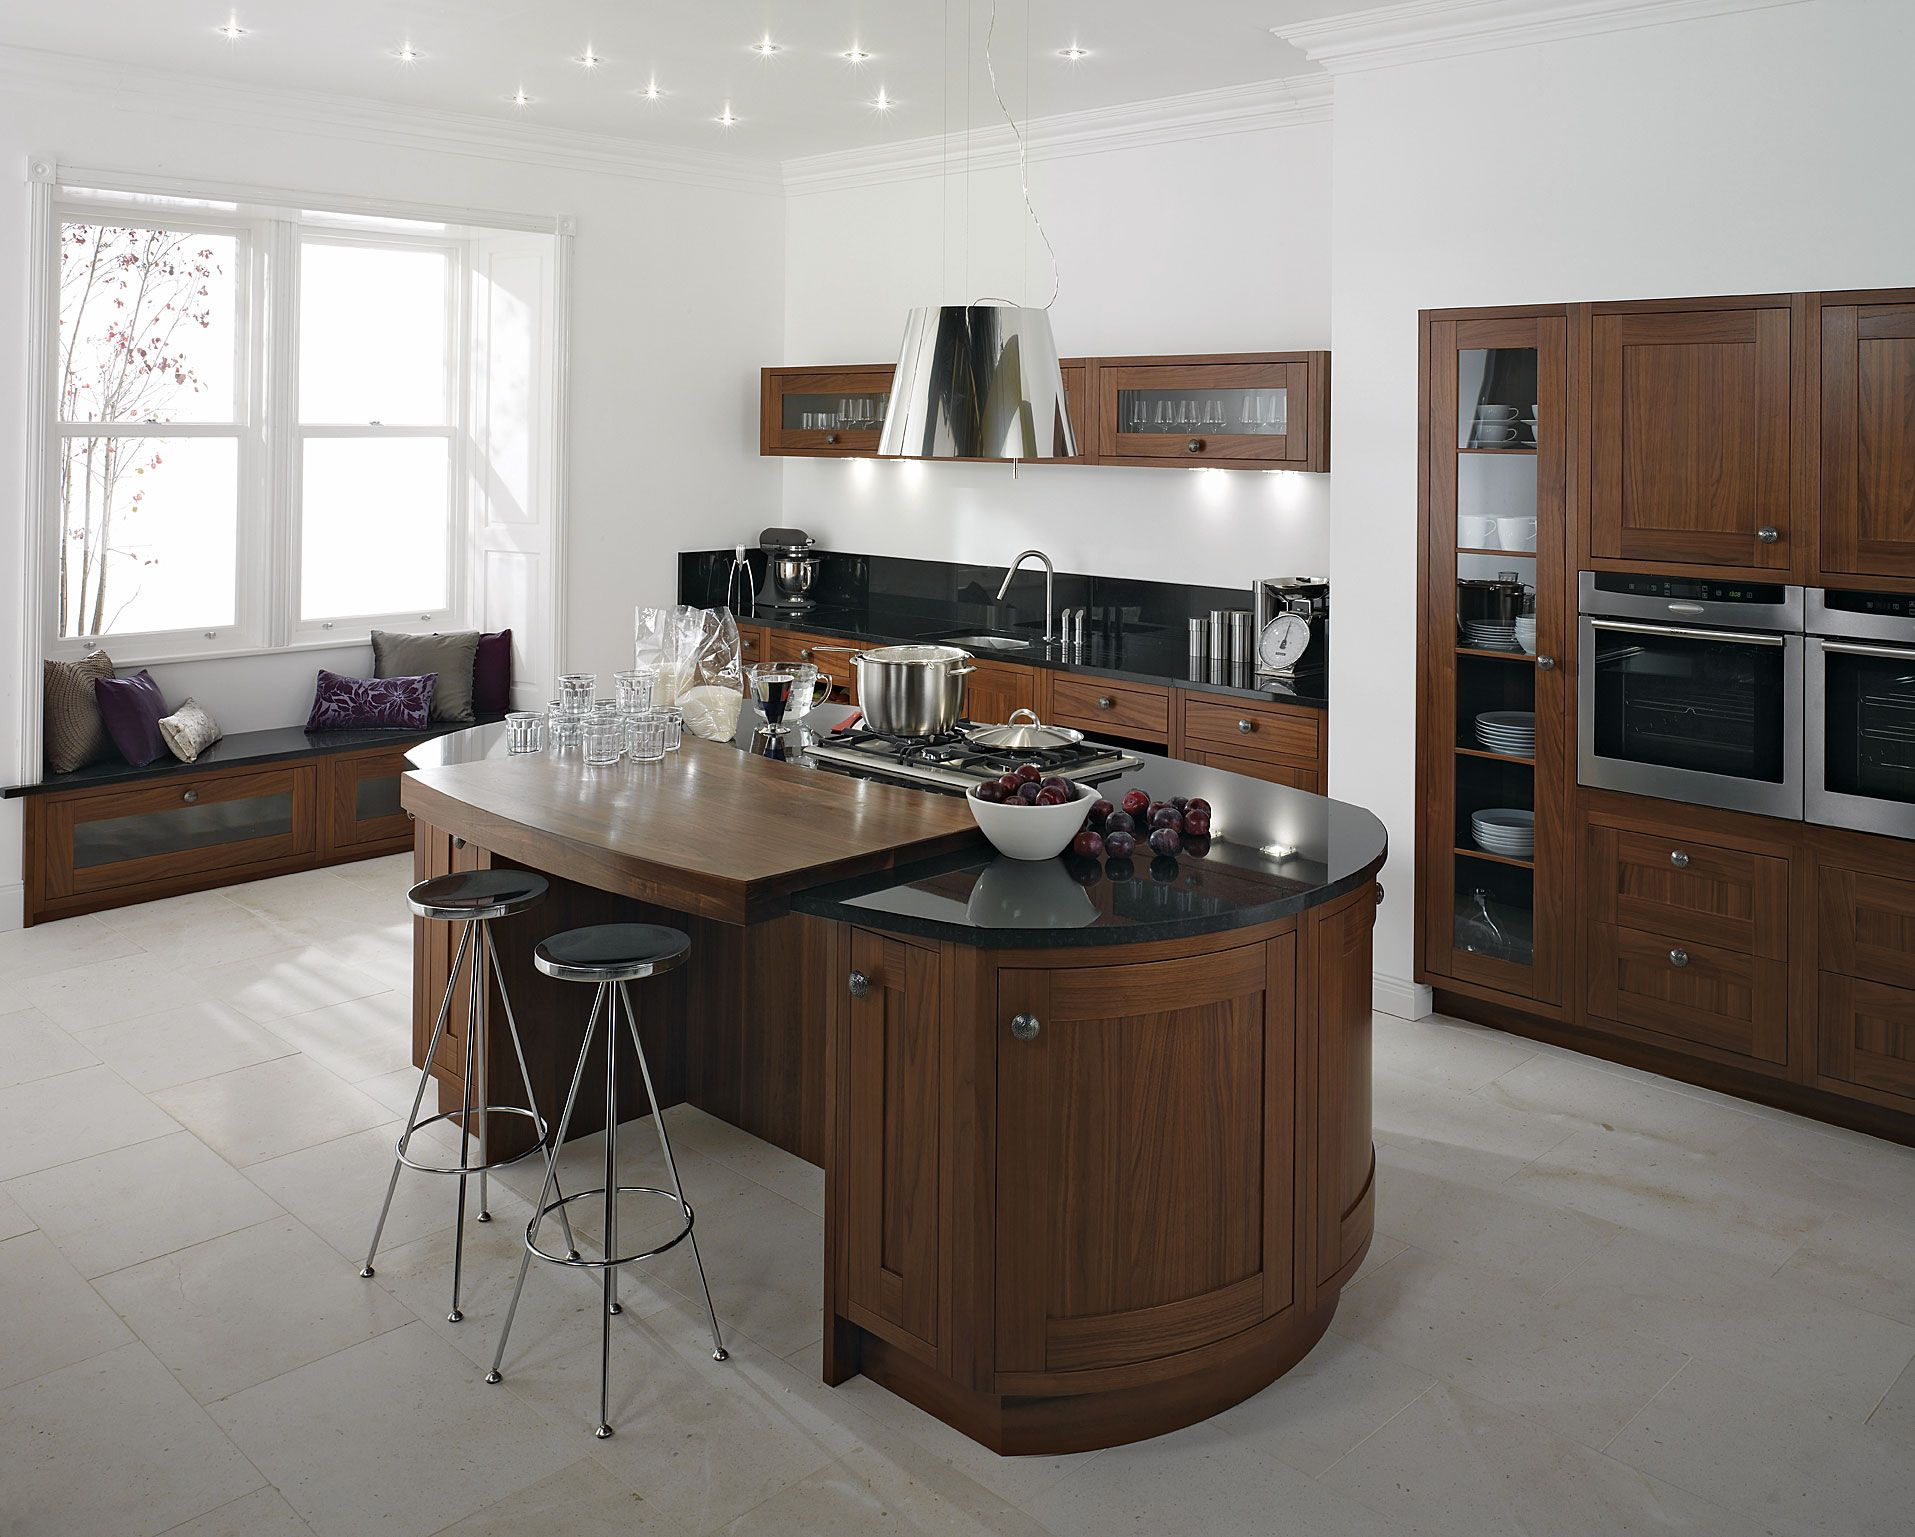 Classy Black Oval Granite Tops Kitchen Island With Seating Of